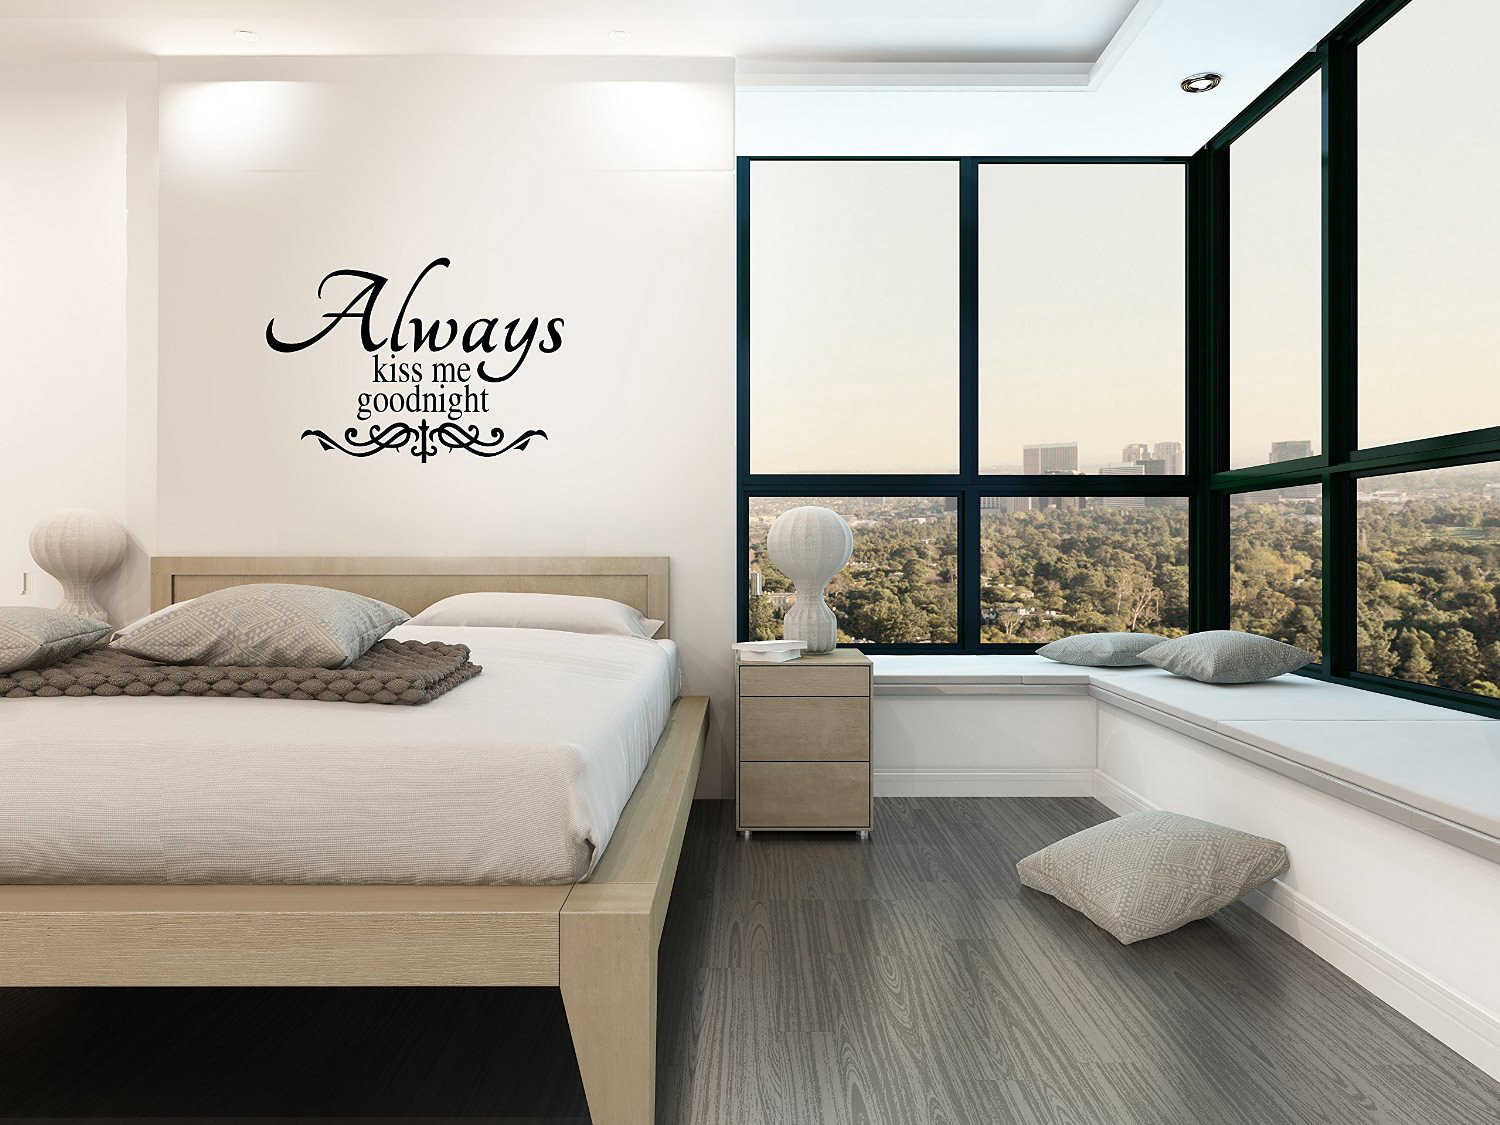 bedroom wall decals amazing ideas | a1houston